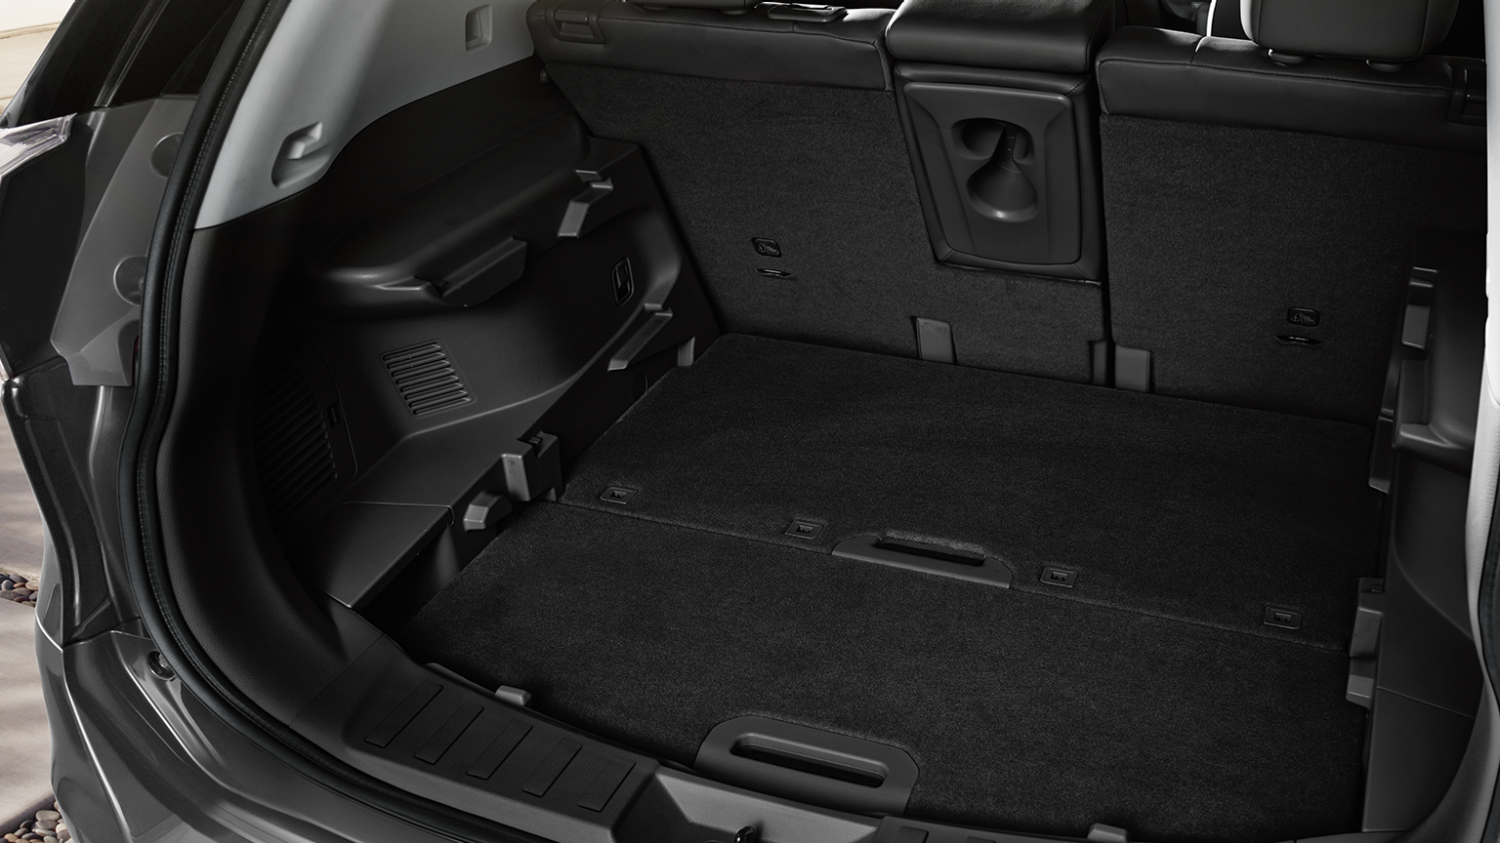 7 seater & 4x4 car features - Secure storage | Nissan X-Trail